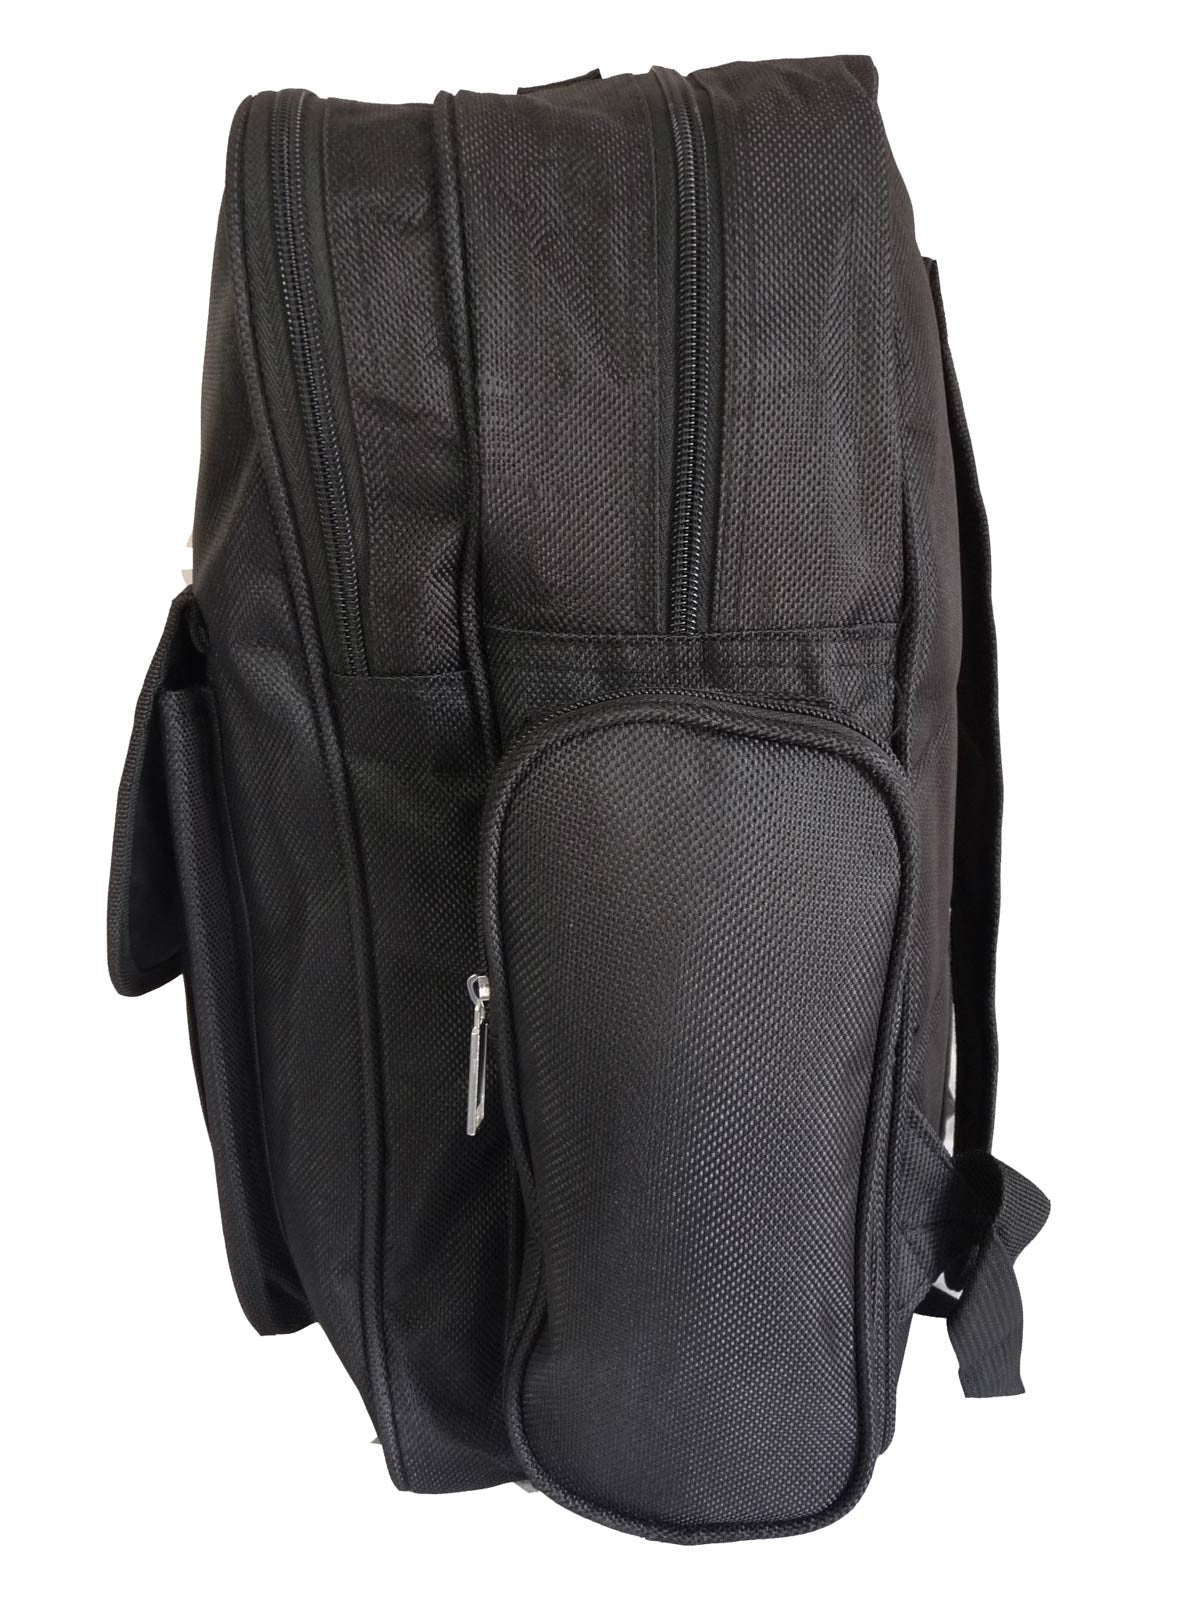 Black School Backpack RL60Kss s Side View